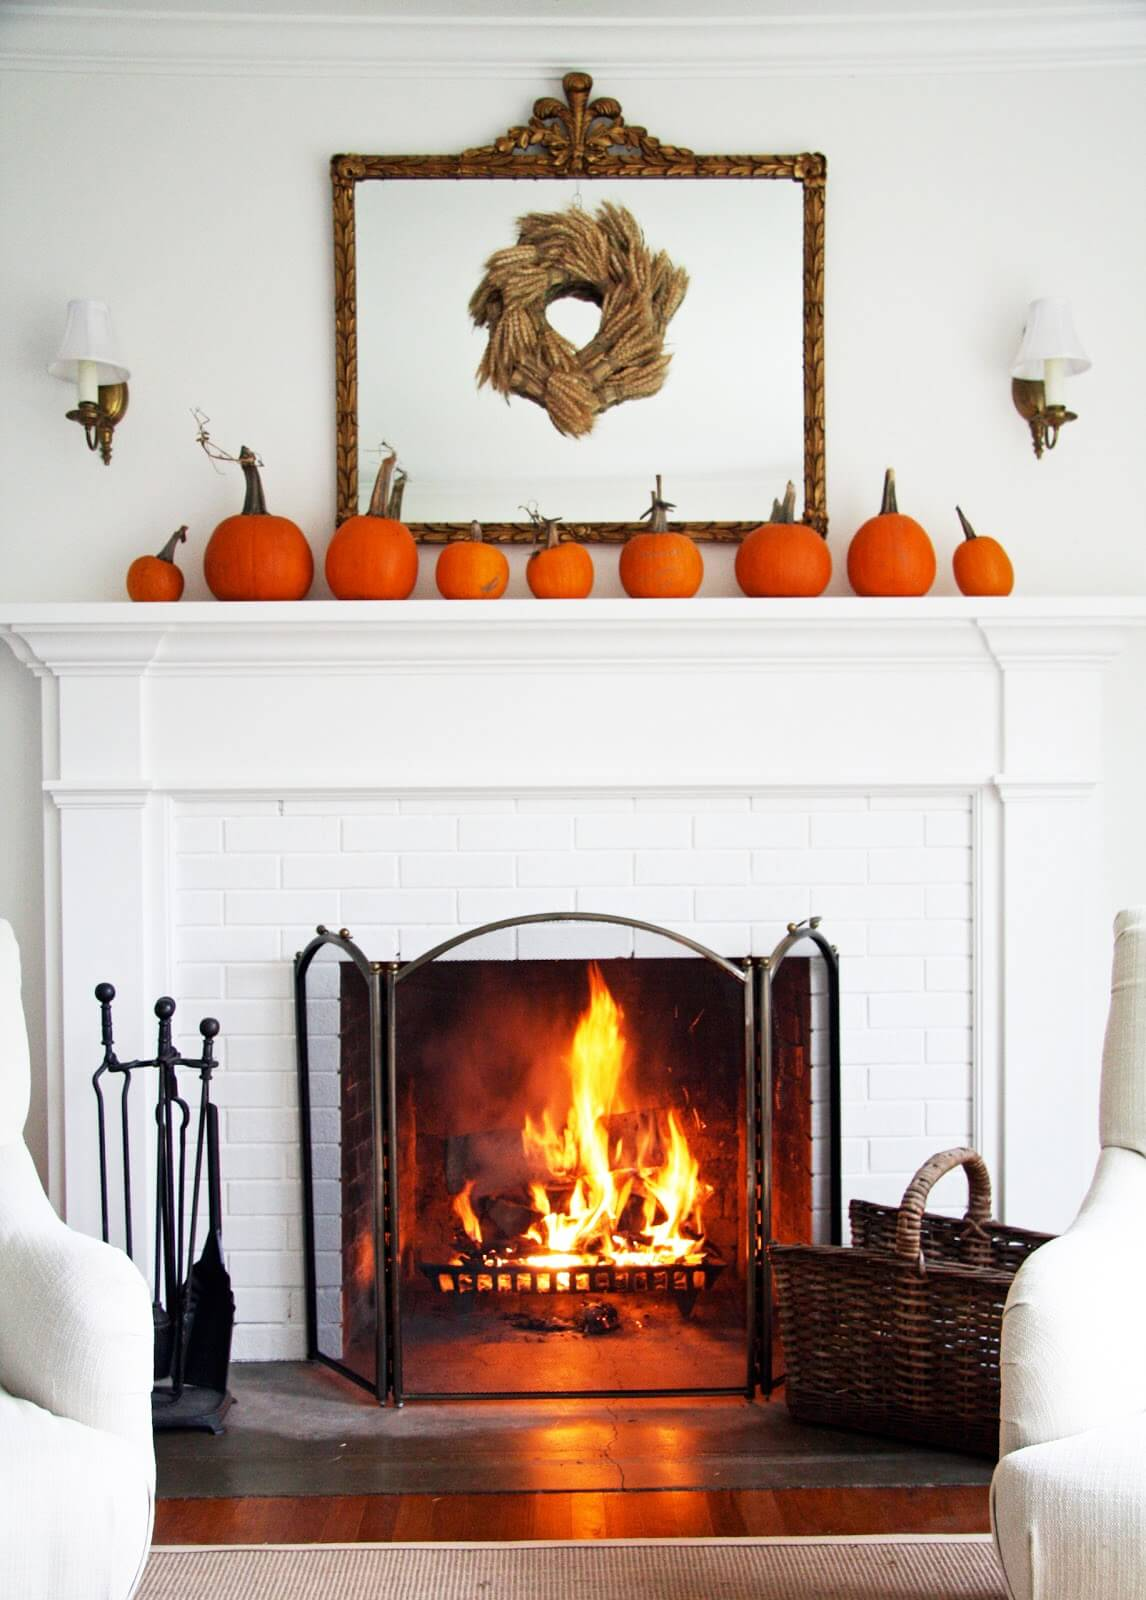 Simple Elegance for Fall Mantel Décor Ideas | Fall Mantel Decorating Ideas For Halloween